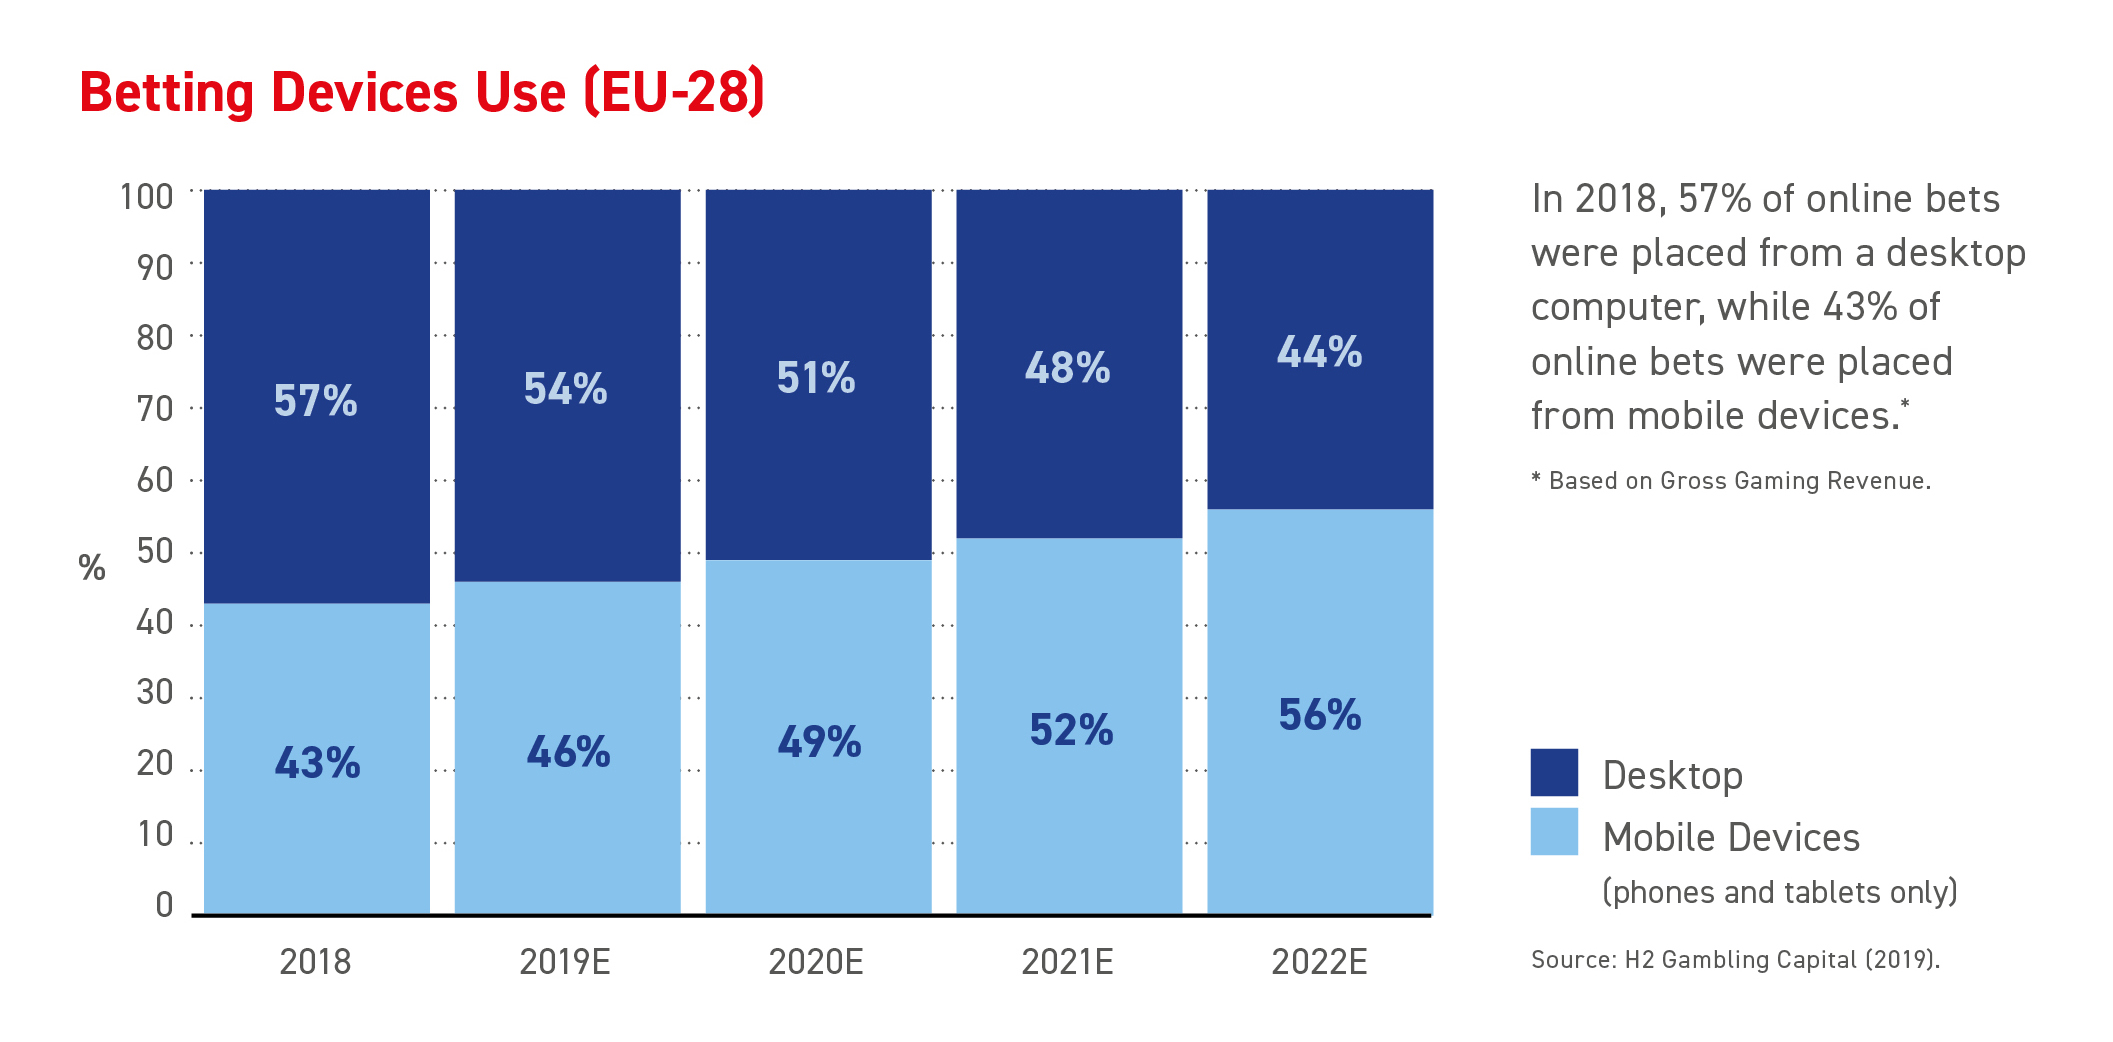 Betting Devices Use (2018) (EU-28)